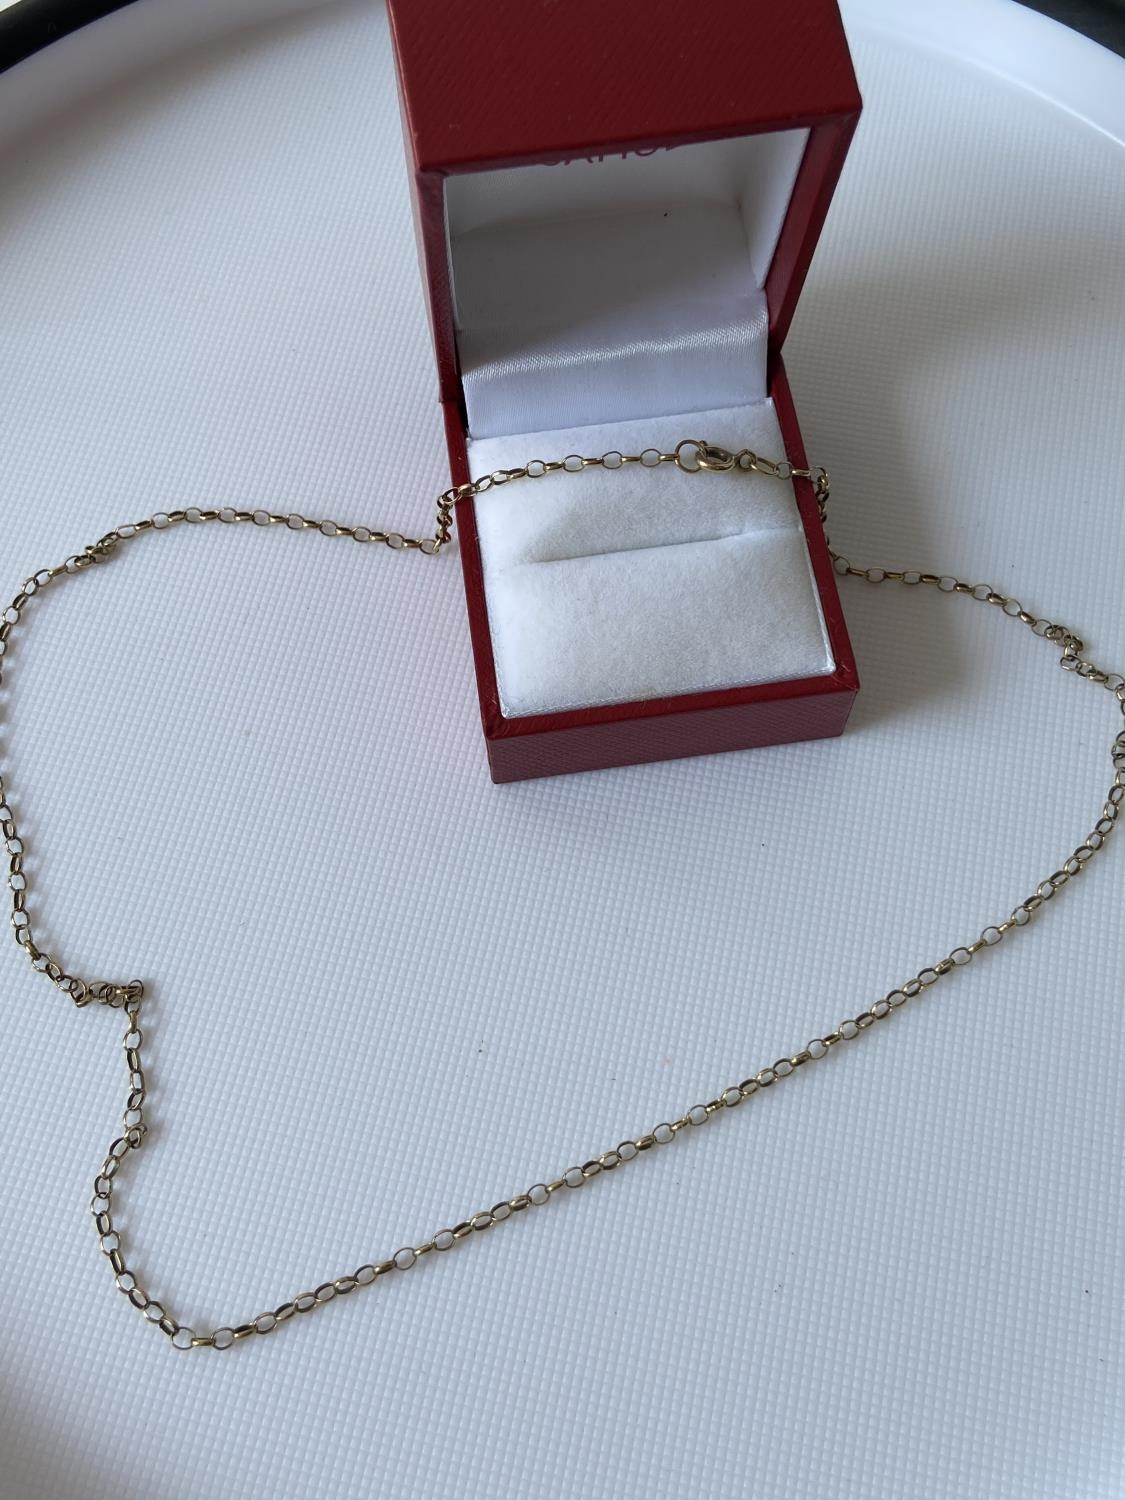 A 9ct gold belcher chain [length 44cm] [2.27g] - Image 2 of 4